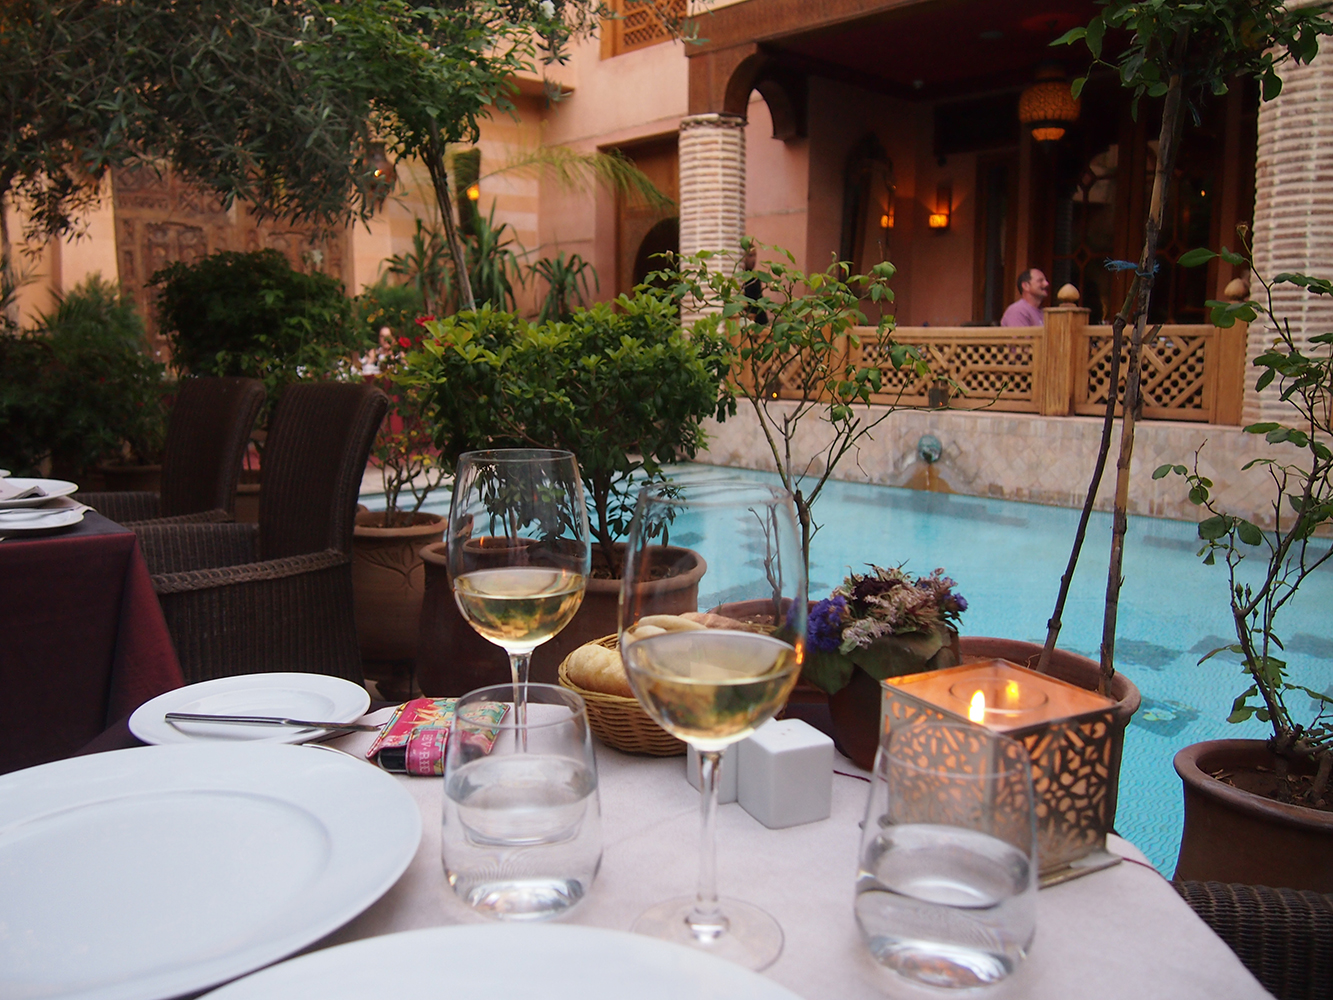 Top 10 riads in marrakech morocco for Architecture maison arabe